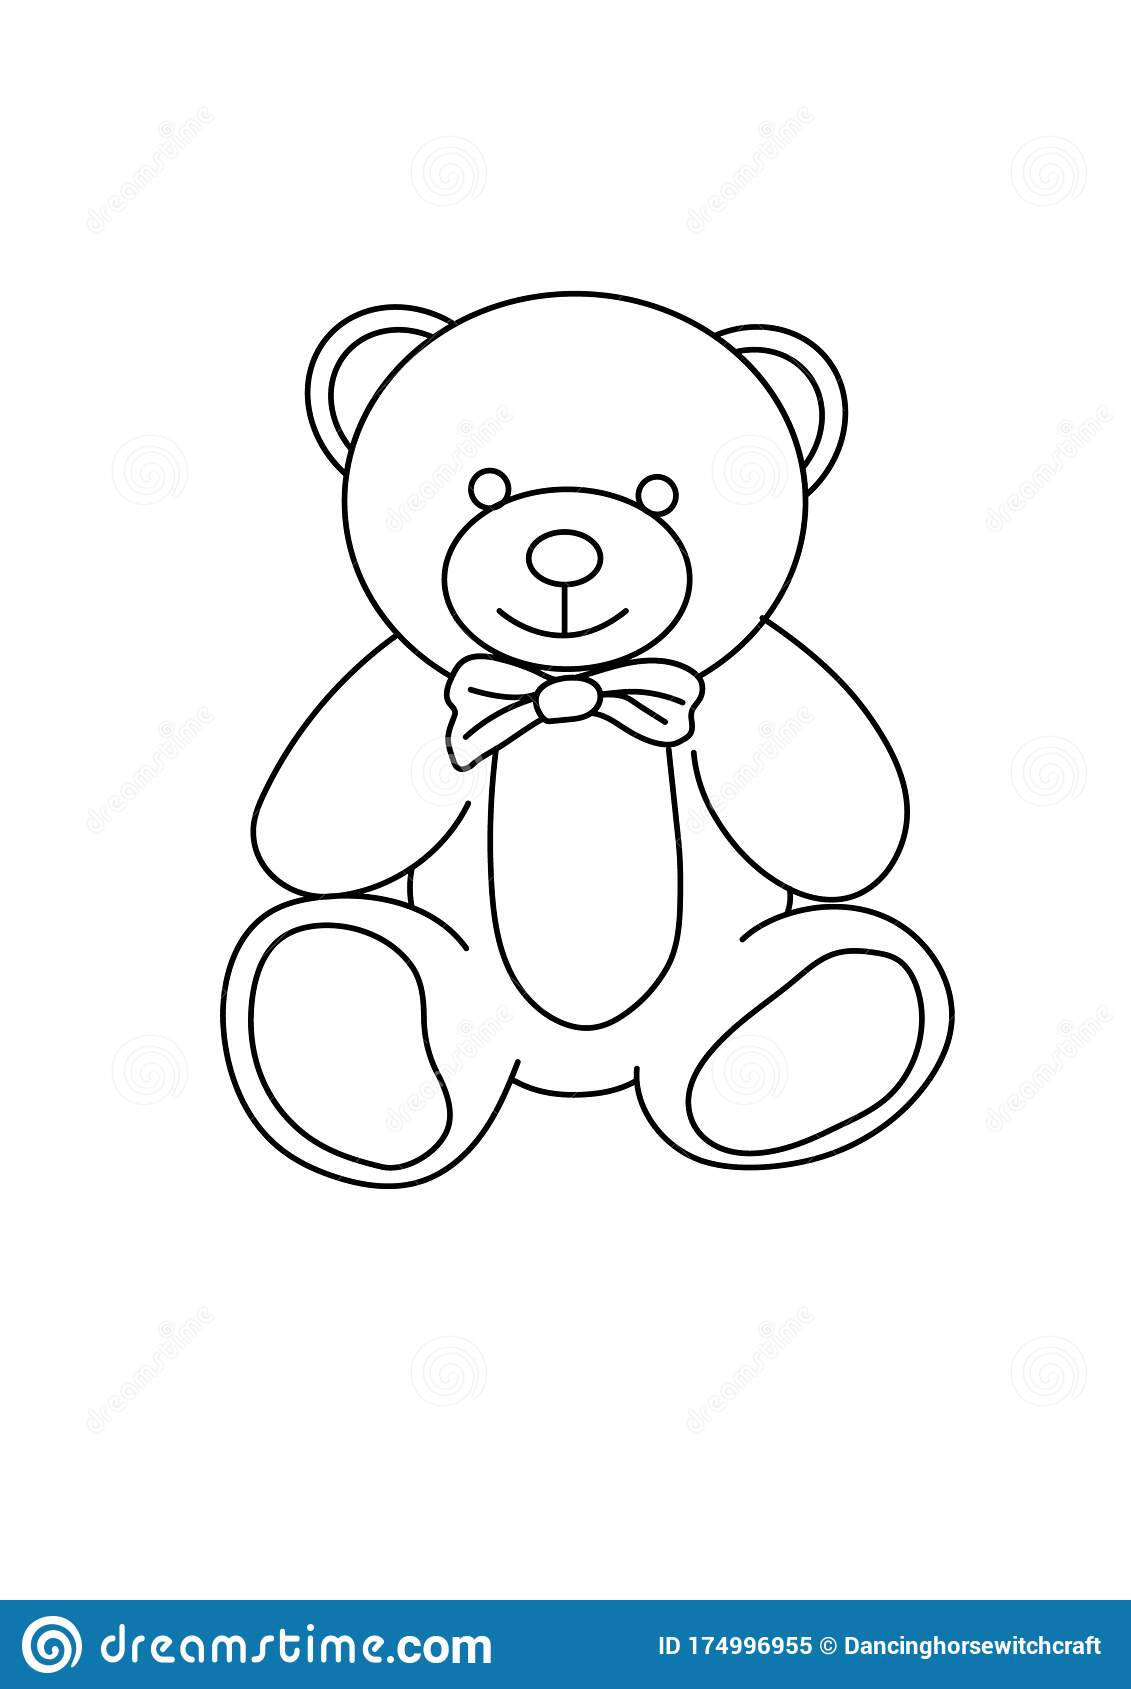 Teddy Clipart Plush Toy - Bear Cartoon Coloring Pages - Png ... | 1689x1131